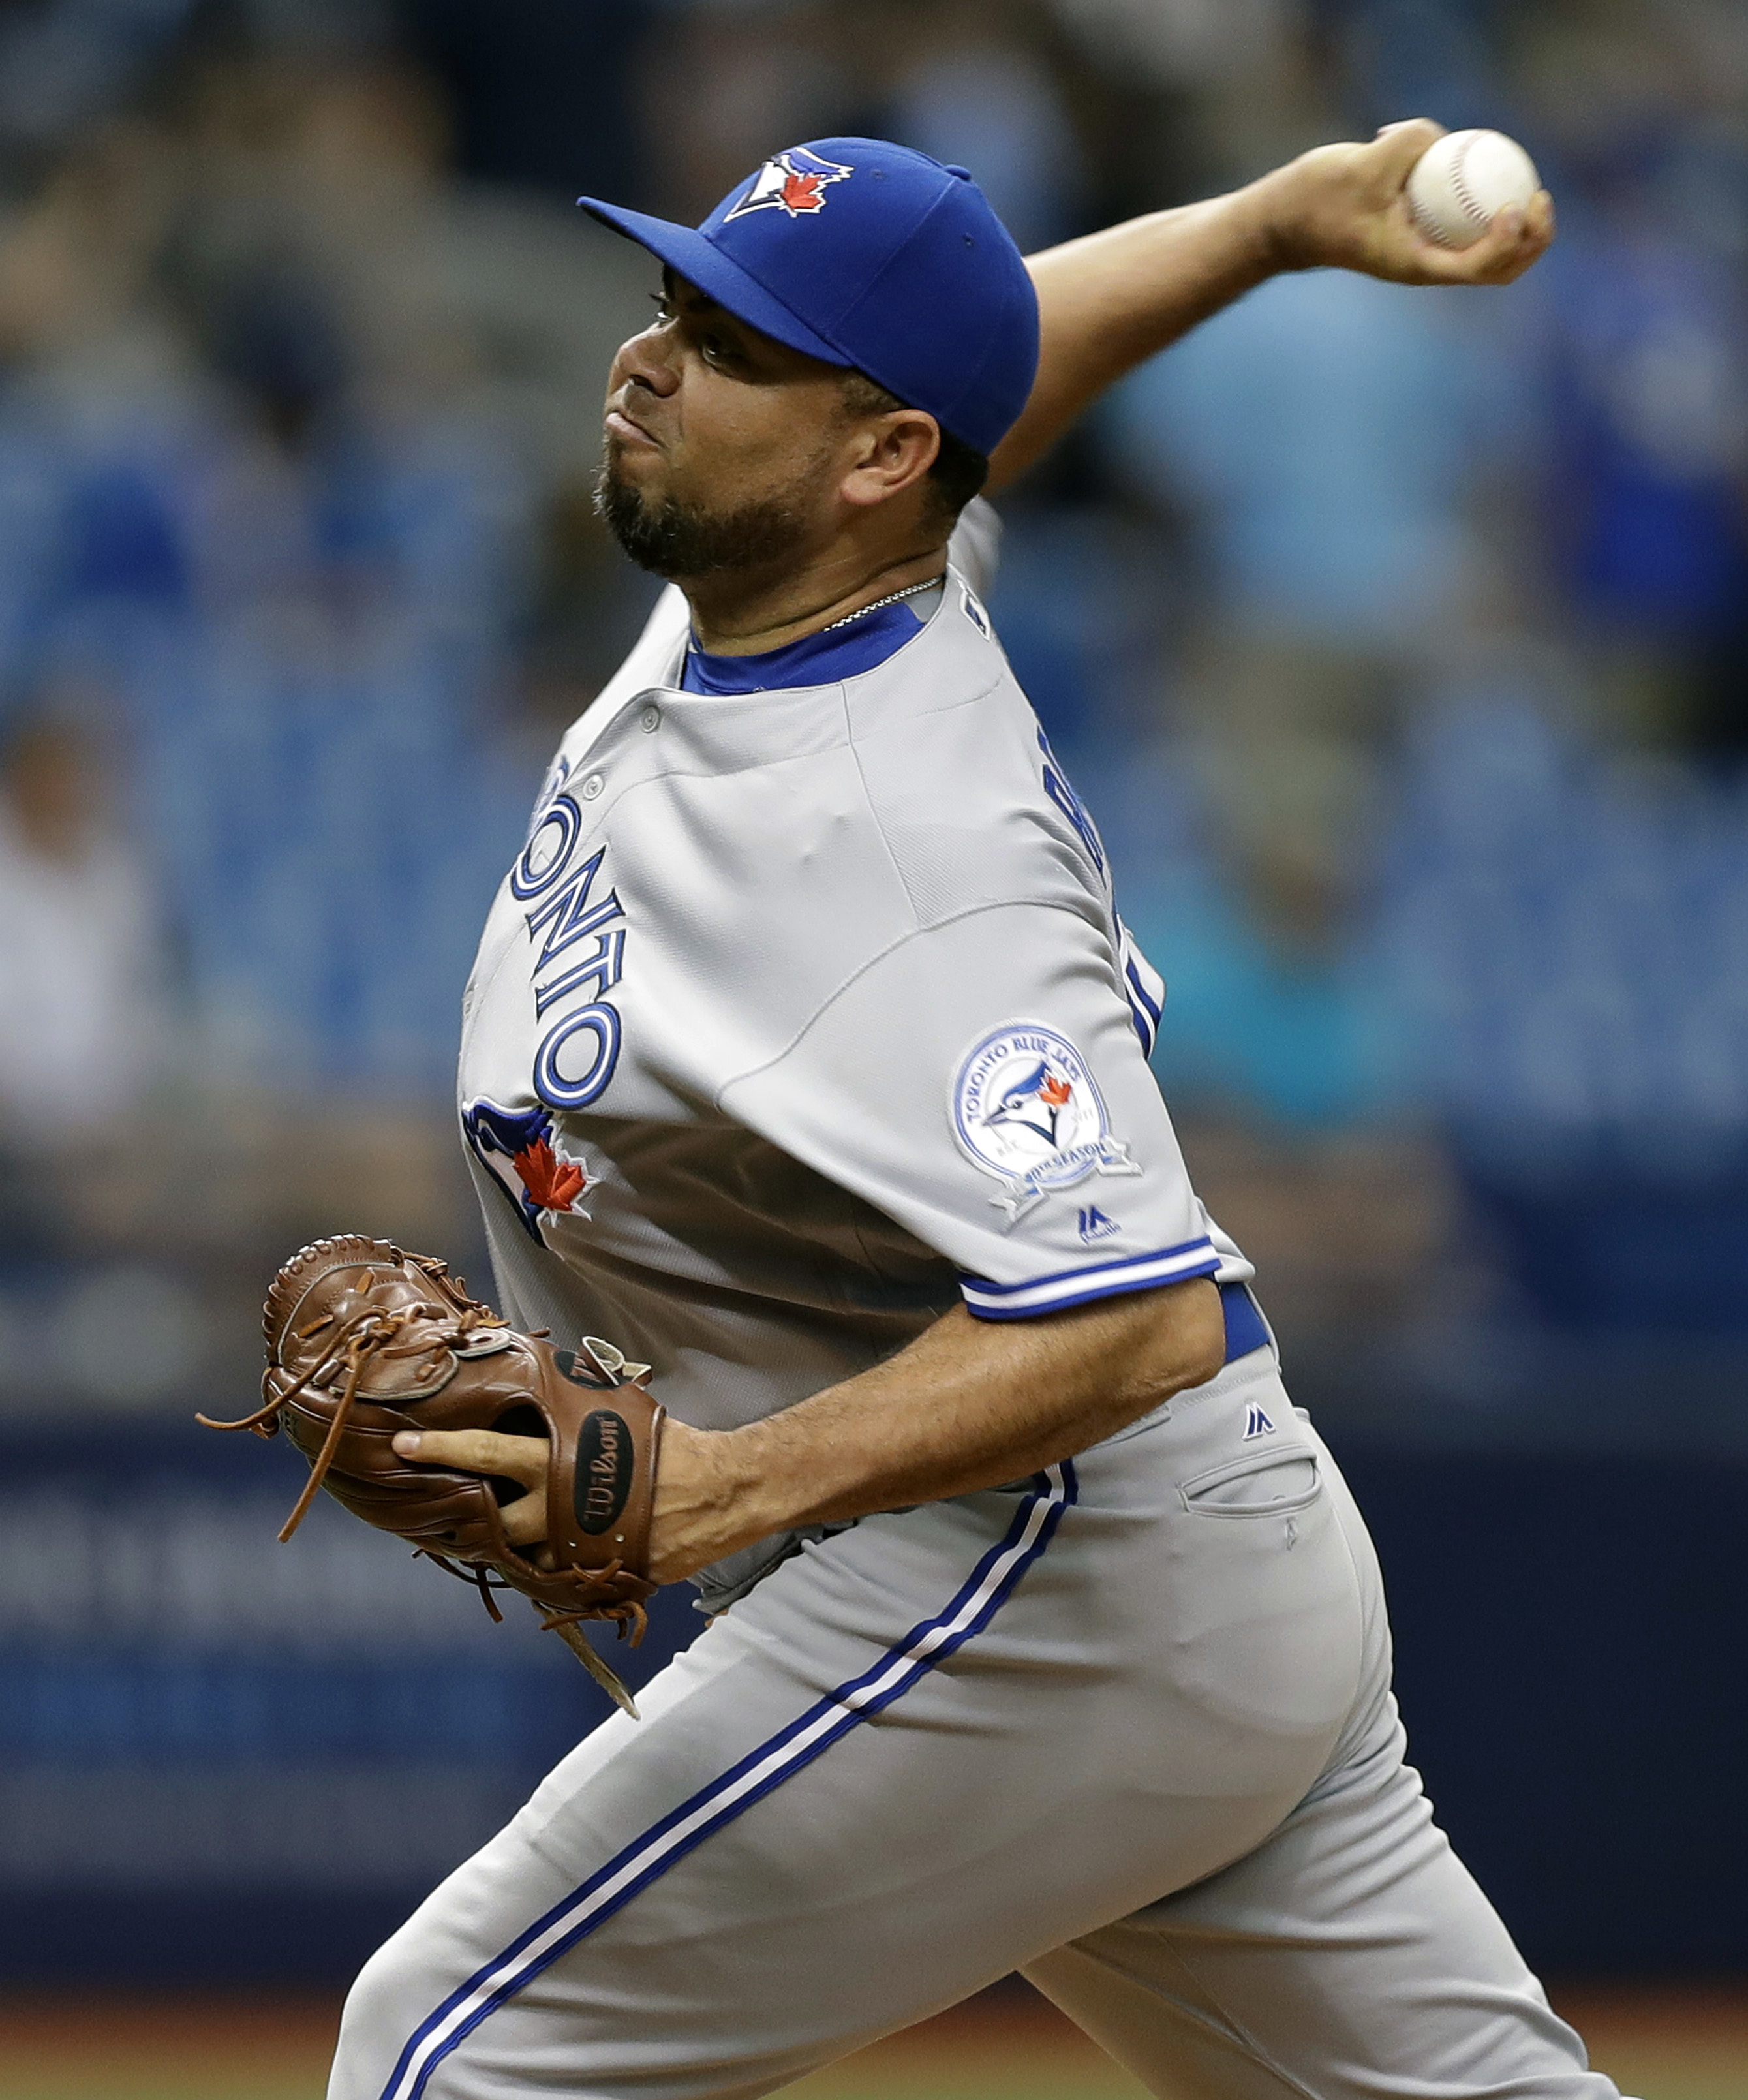 Toronto Blue Jays relief pitcher Joaquin Benoit delivers to the Tampa Bay Rays during the eighth inning of a baseball game Sunday, Sept. 4, 2016, in St. Petersburg, Fla. (AP Photo/Chris O'Meara)